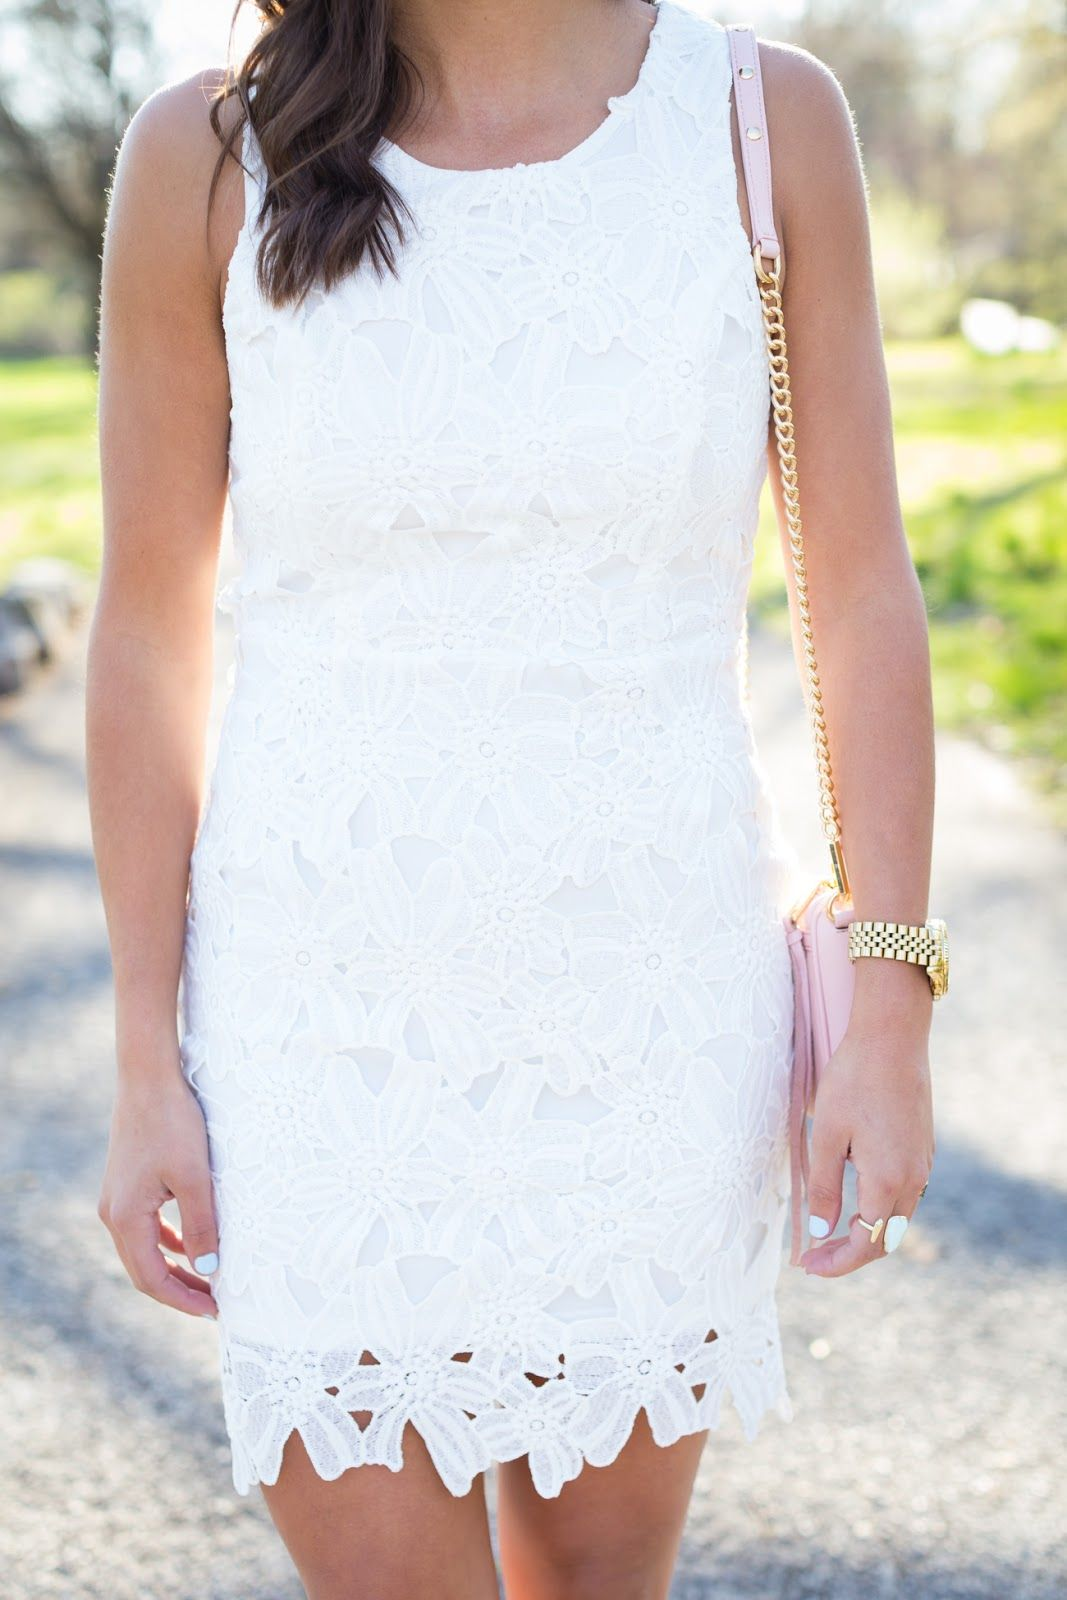 white-lace-dress-1263.jpg 1.067×1.600 piksel